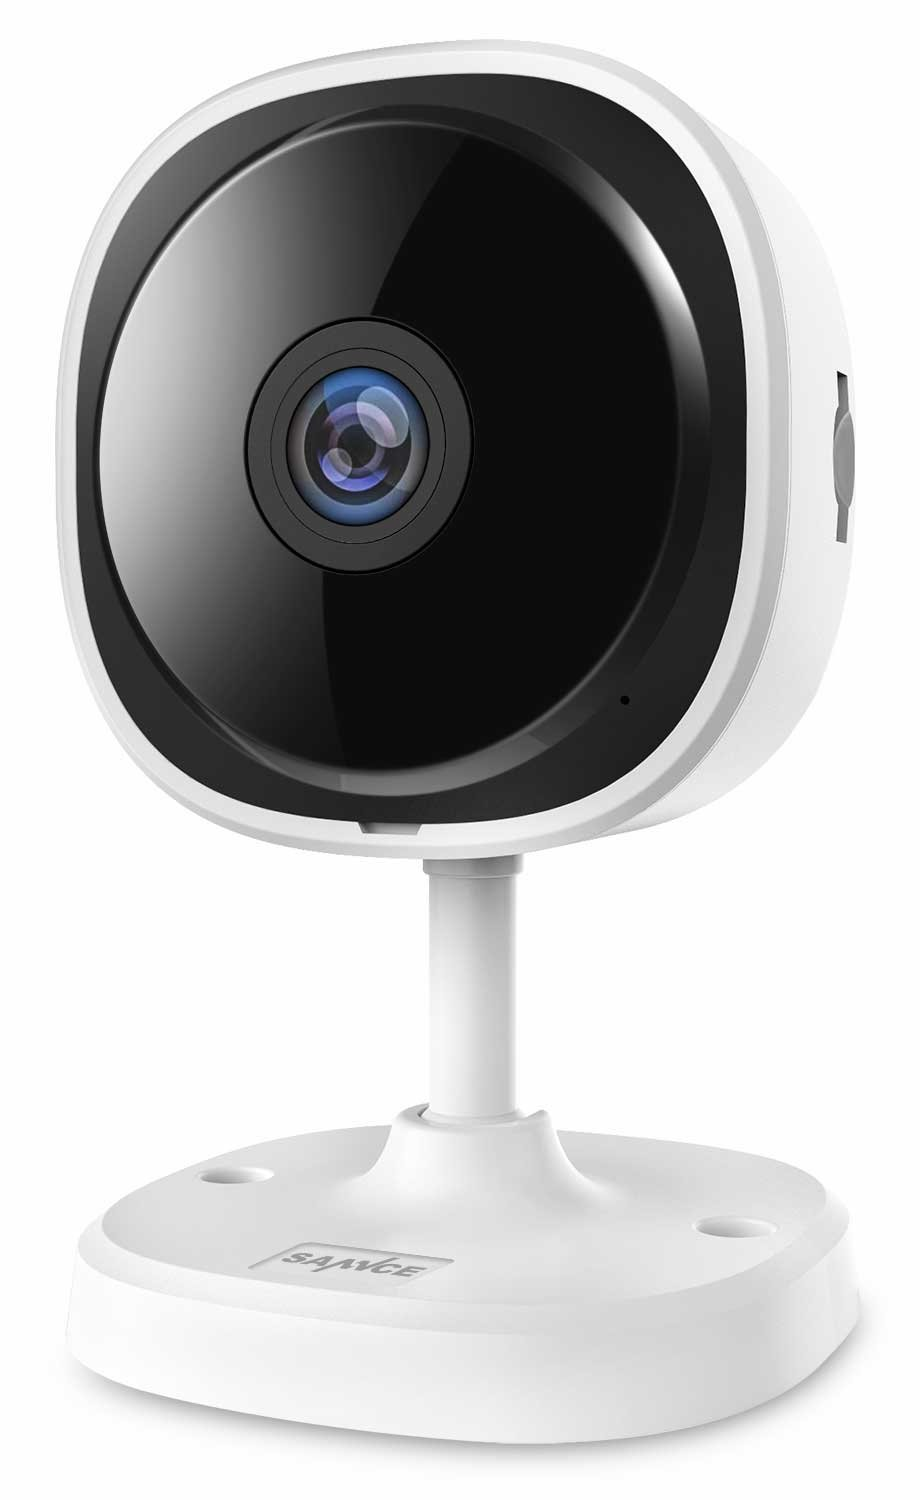 SANNCE 1080P HD WIFI Security Camera, 180-degree Wireless IP Camera with fisheye Full Angle, Cloud Service Available, Two-way Audio, Motion Detection